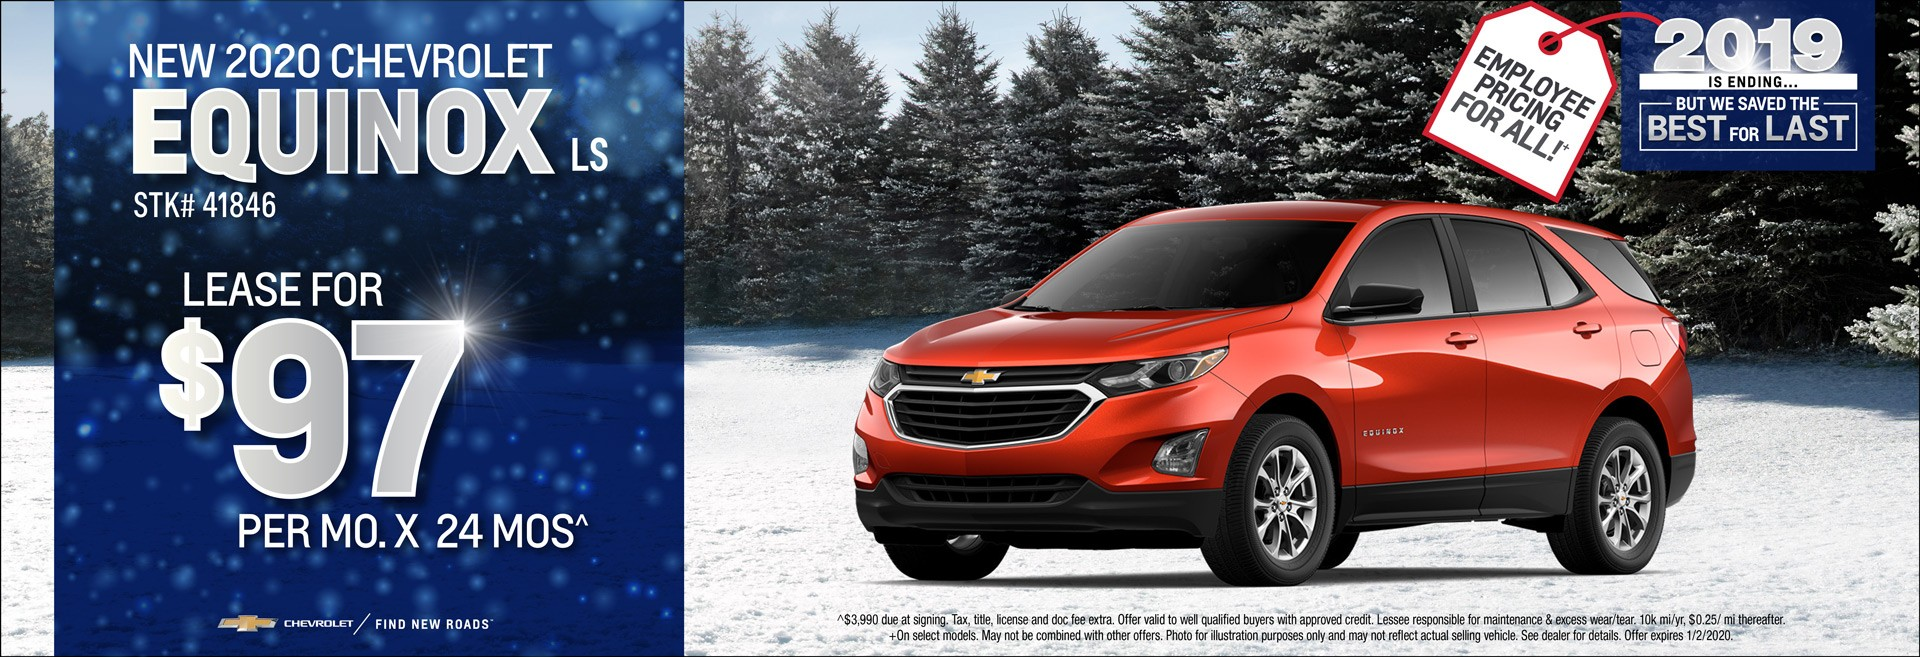 New 2020 Chevrolet Equinox LS Lease for $97/mo x 24mos.